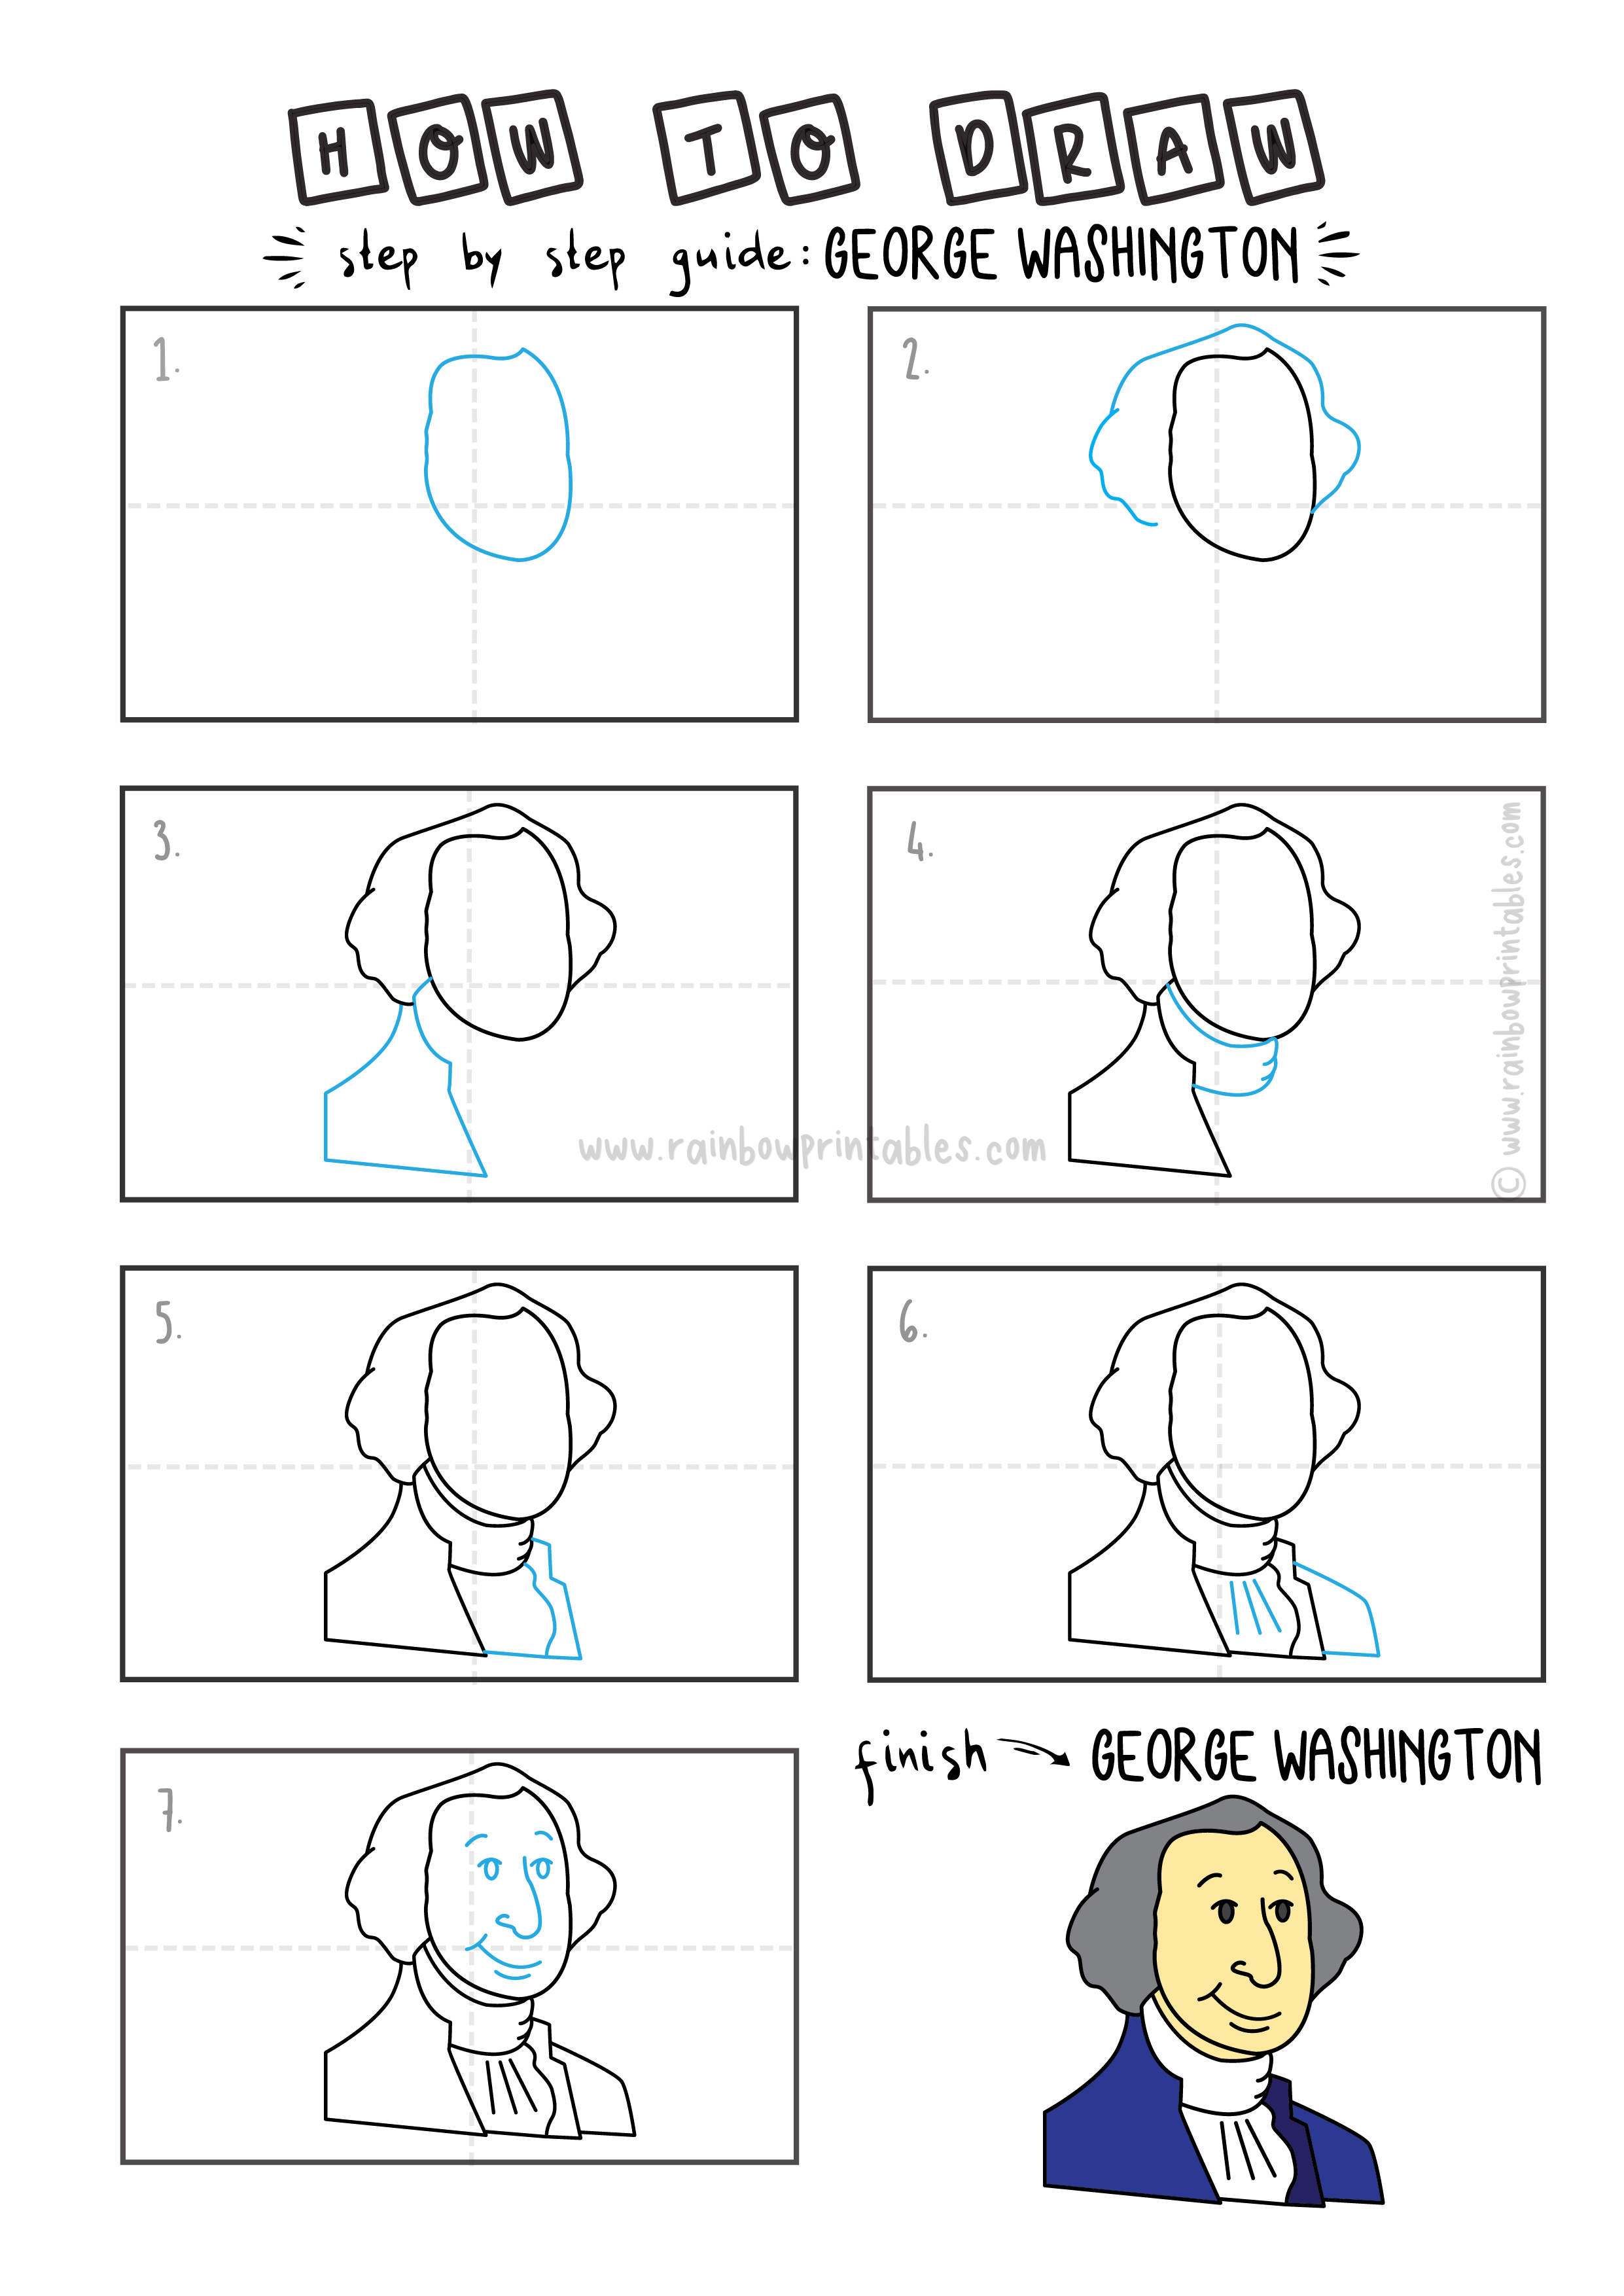 How To Draw George washington Cartoon For Kids Art History Step By Step EASY Protrait Learning Drawing